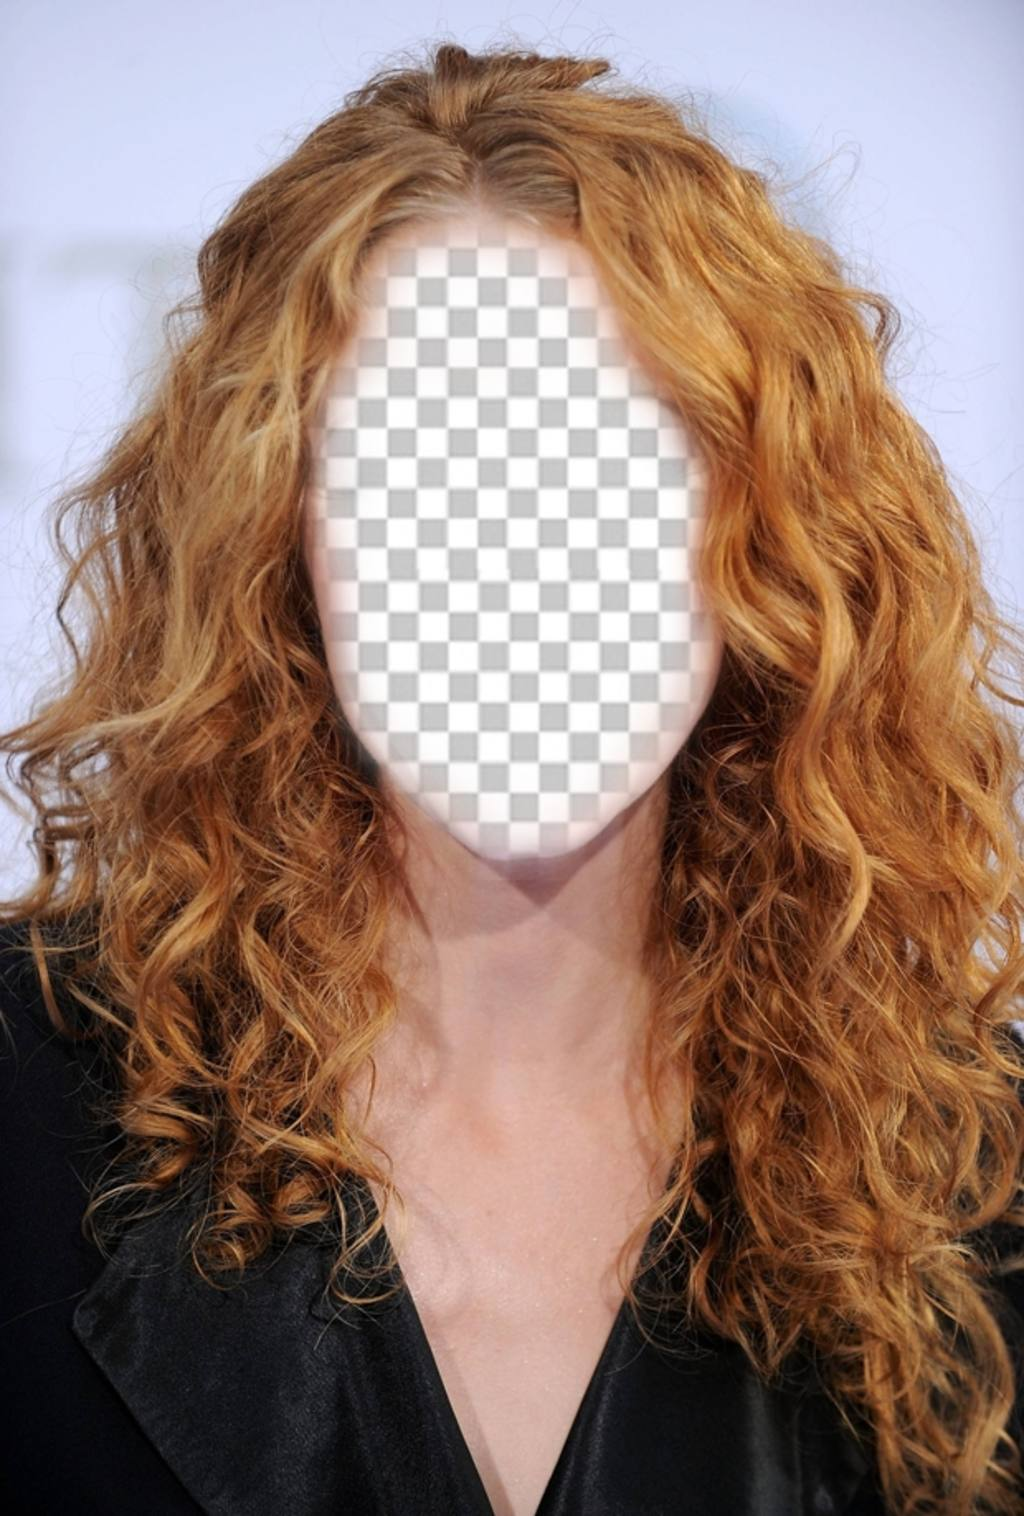 Change Your Hair To Curly Haired One With This Online